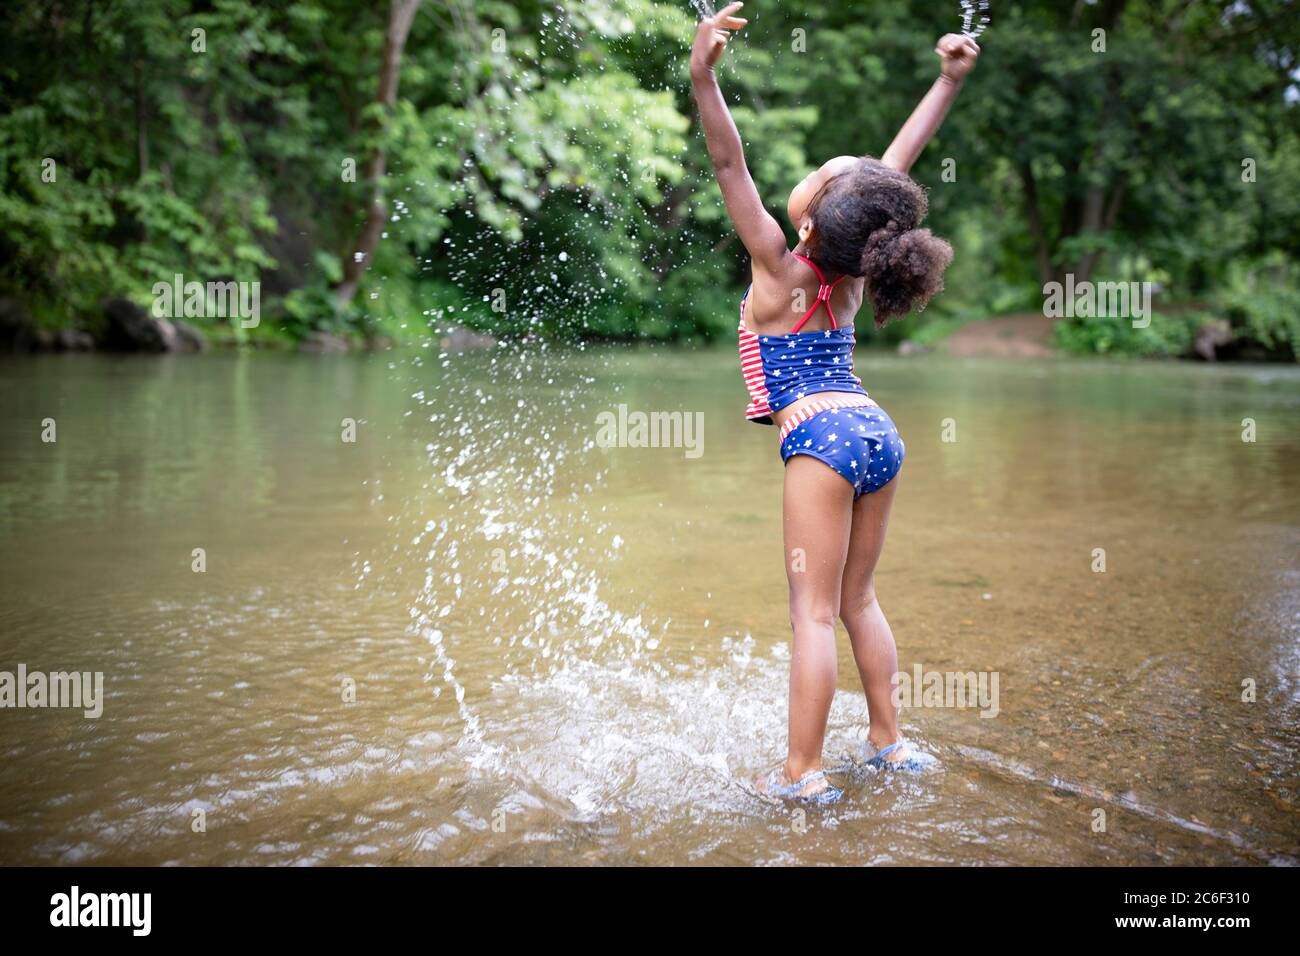 A young girl wades and splashes in the Shenandoah River, Virginia, USA. Stock Photo